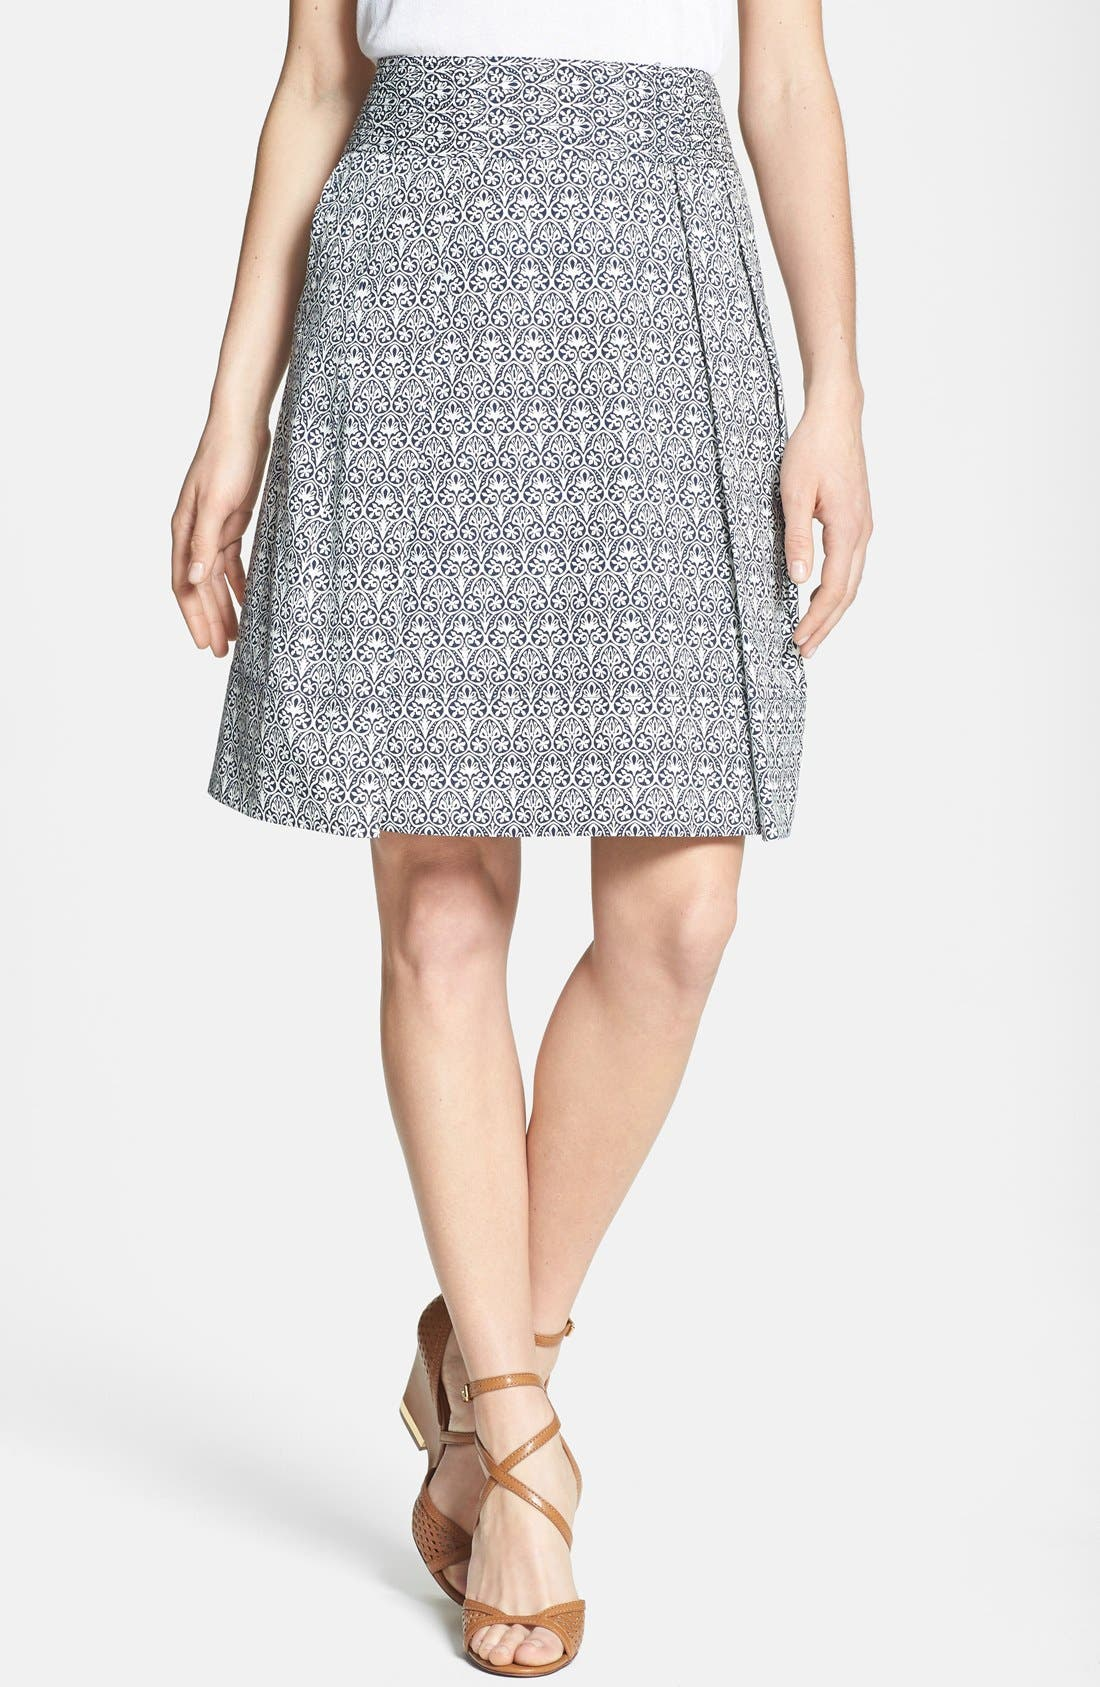 Alternate Image 1 Selected - Tory Burch 'Mila' Stretch Cotton Skirt